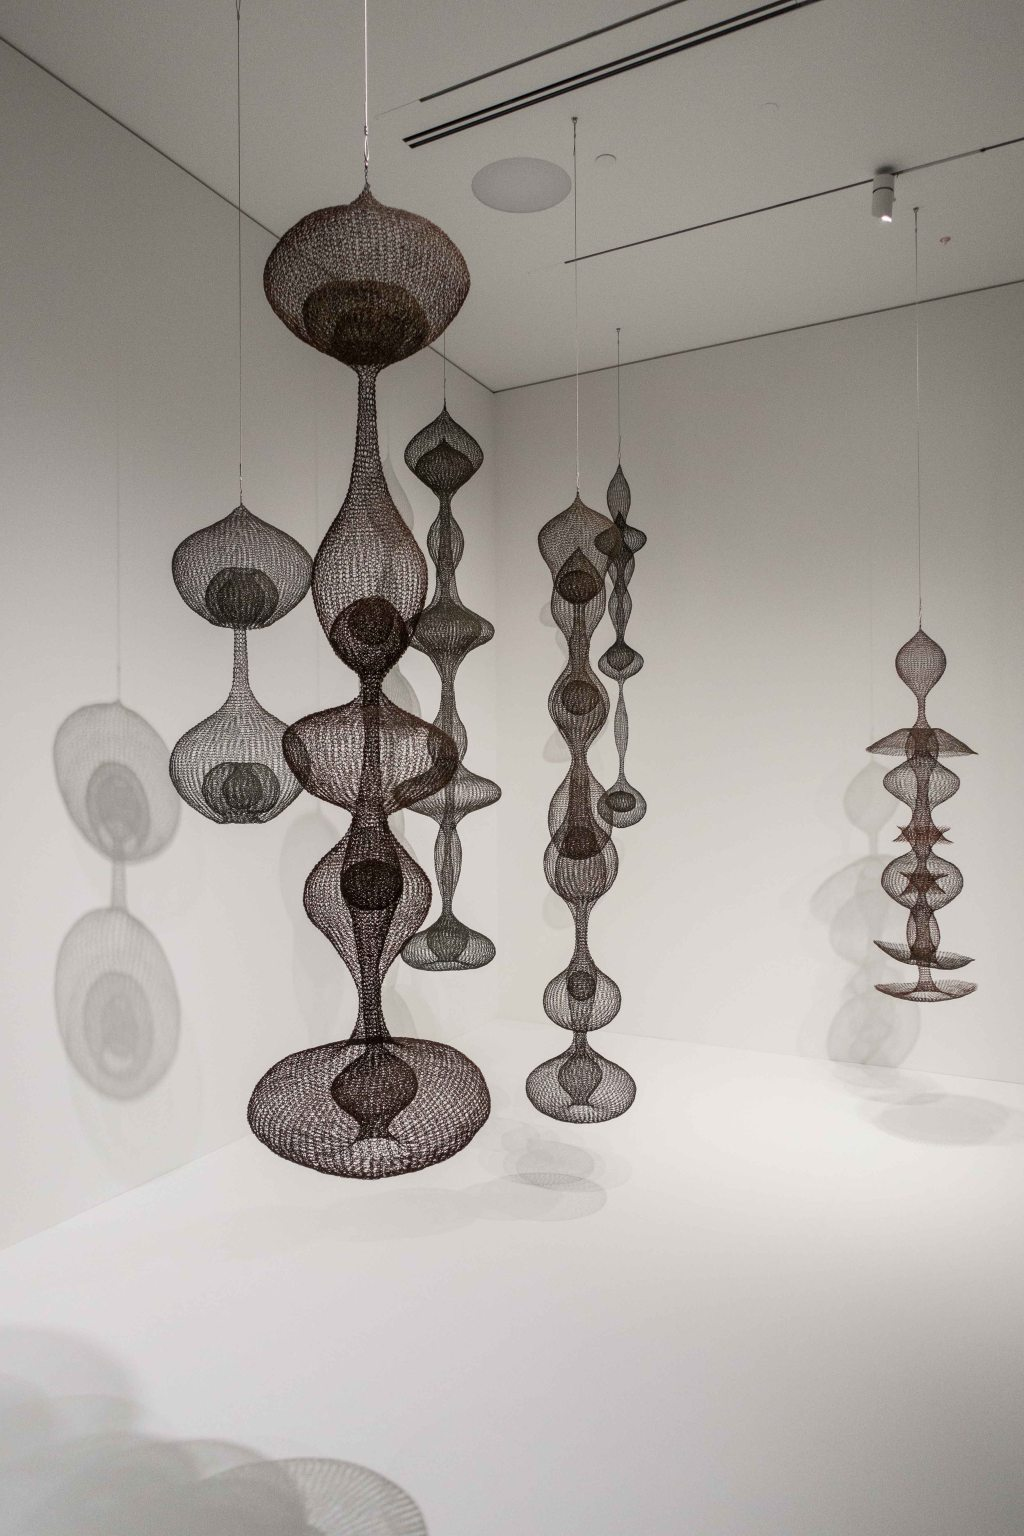 Wire sculptures by Ruth Azawa